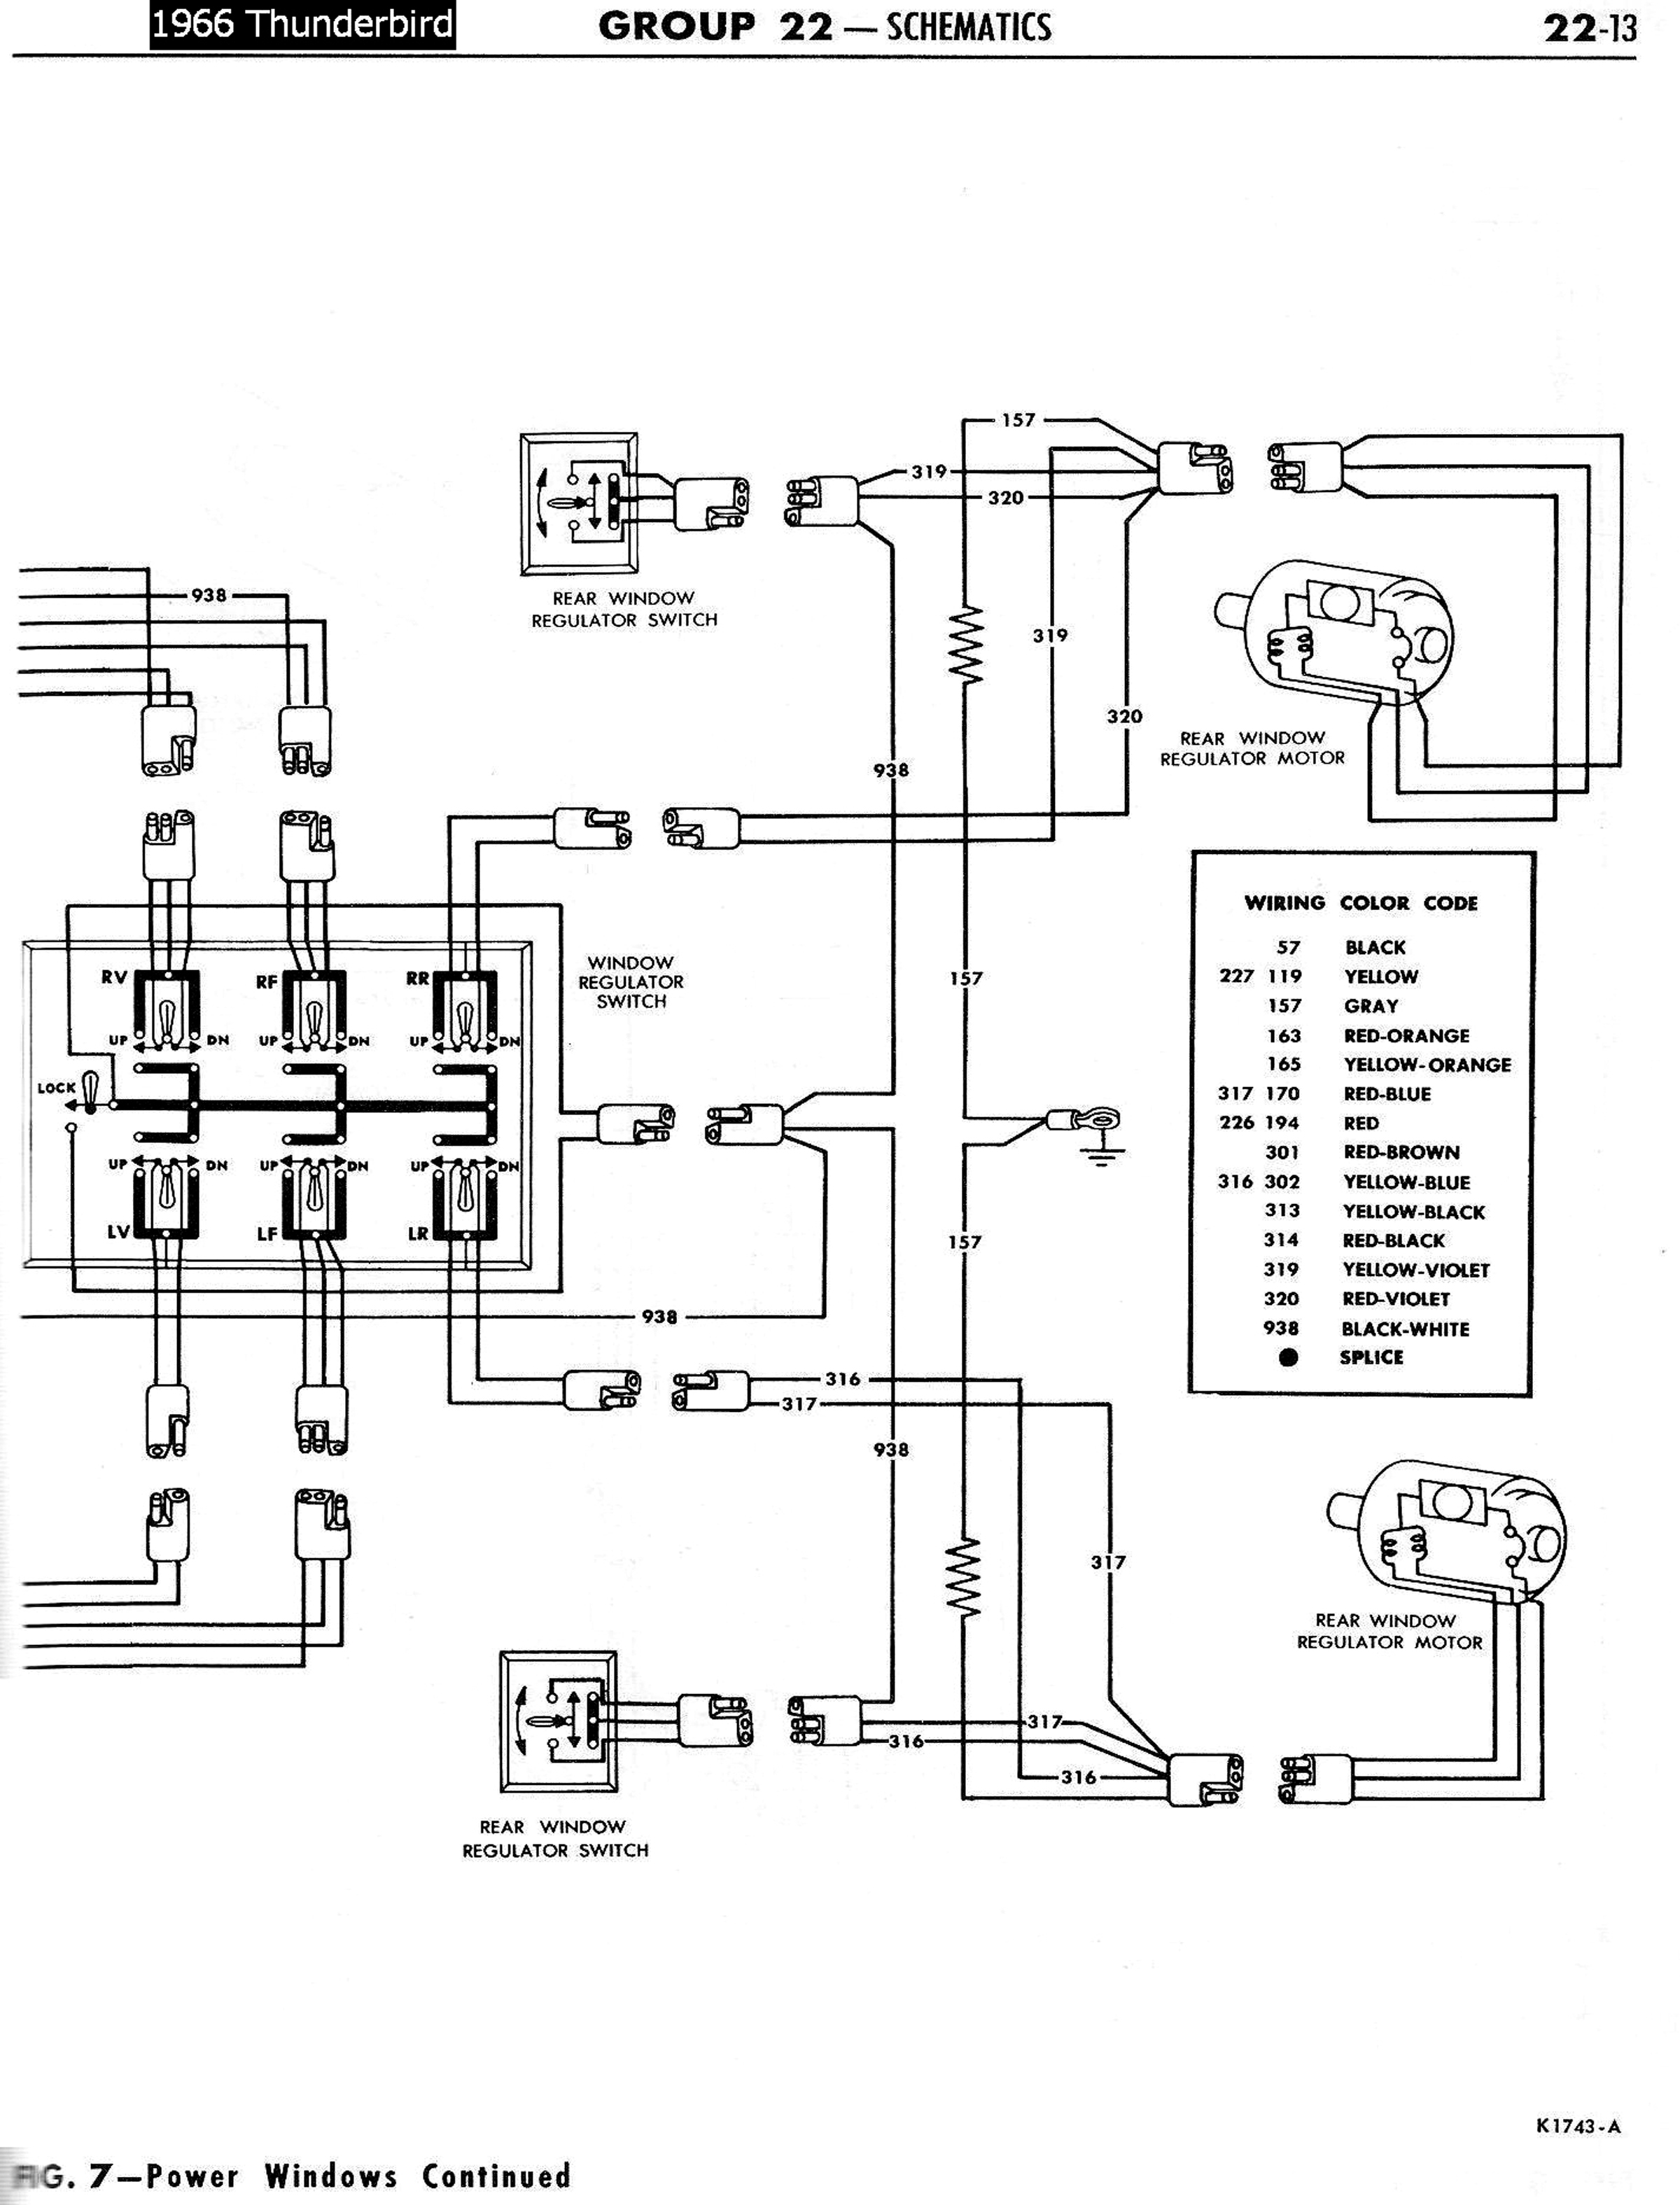 65 T Bird Wiring Diagram All As Well Ford Ignition On 1978 F150 In Addition 1965 Thunderbird 66 Mustang